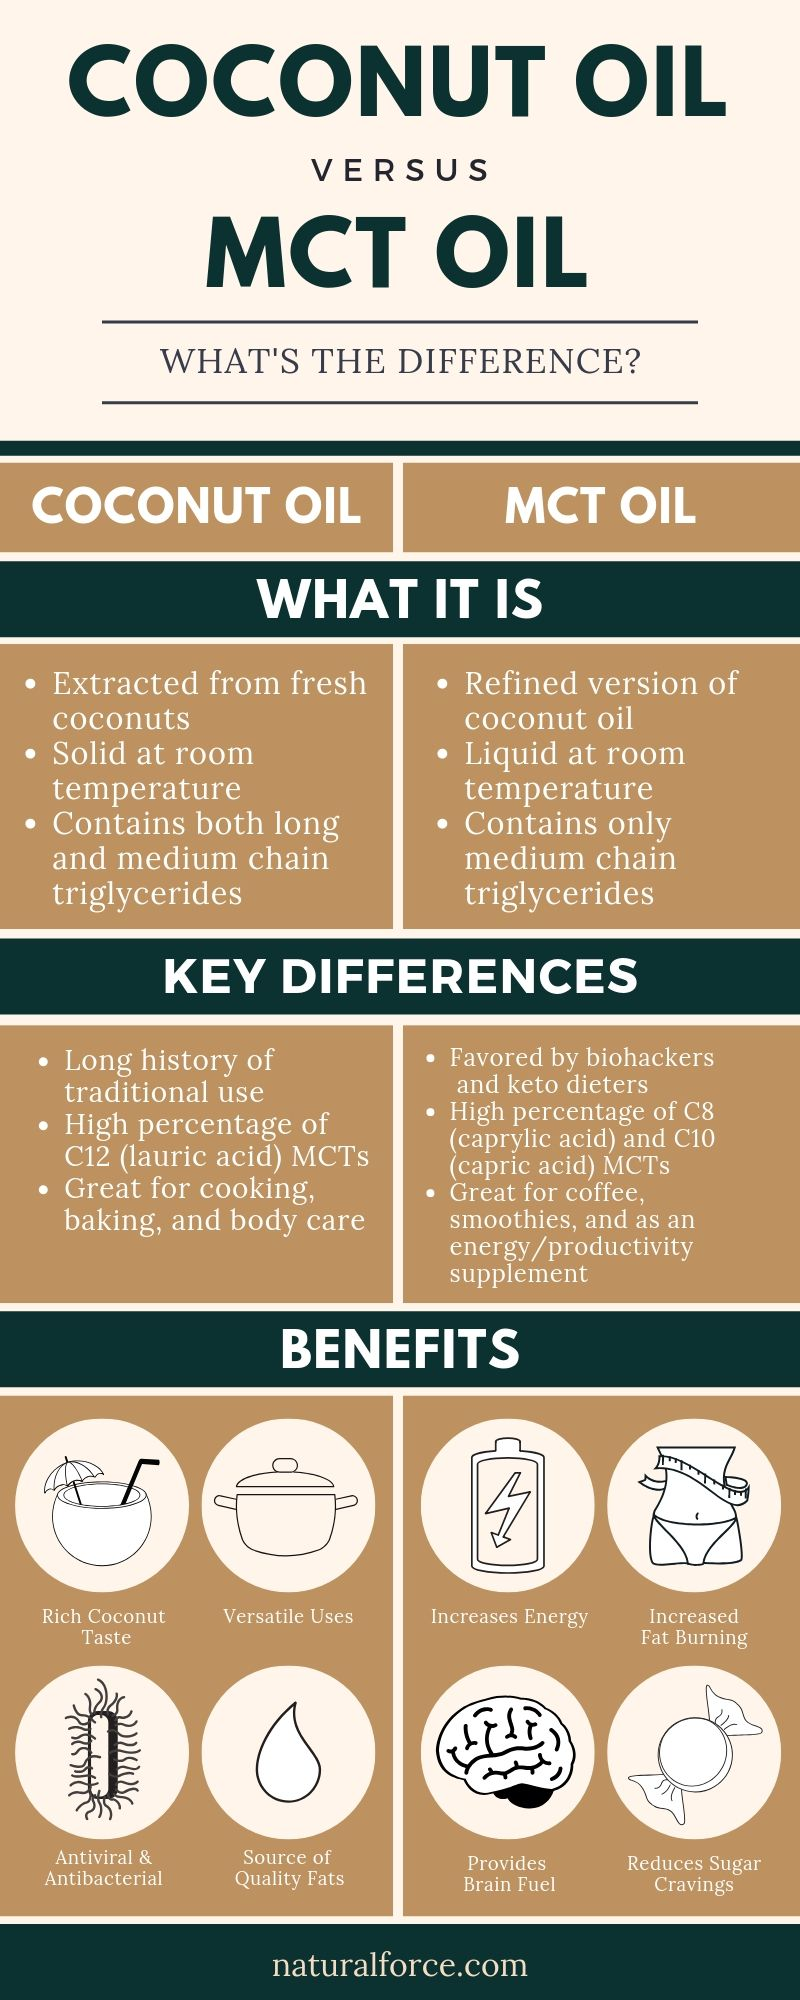 mct oil vs coconut oil infographic